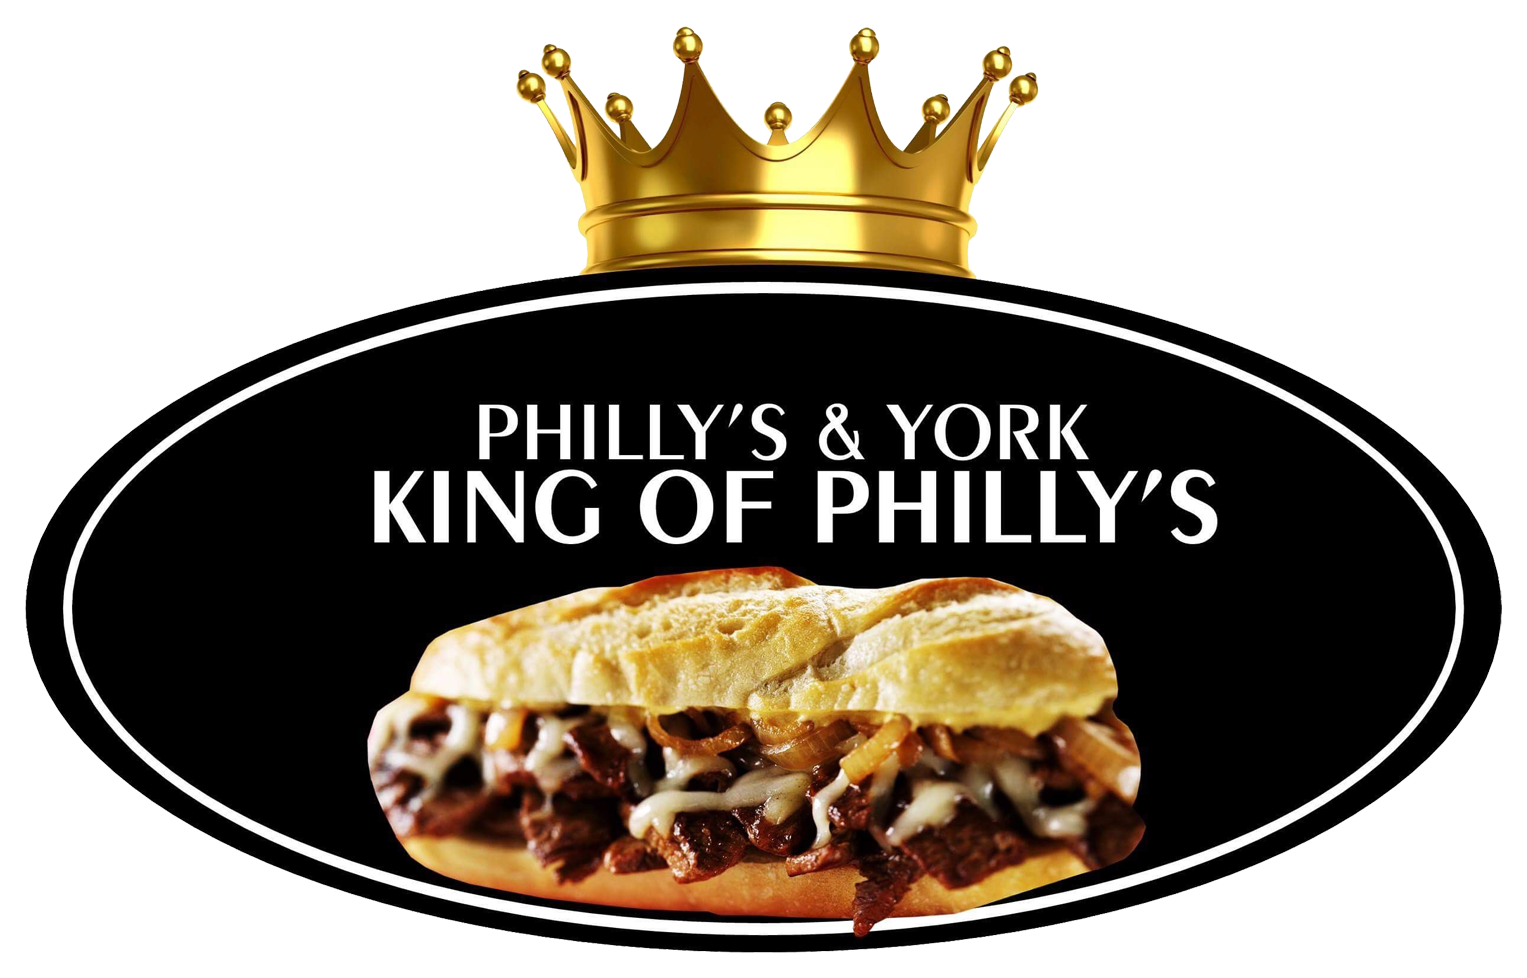 Philly's & York